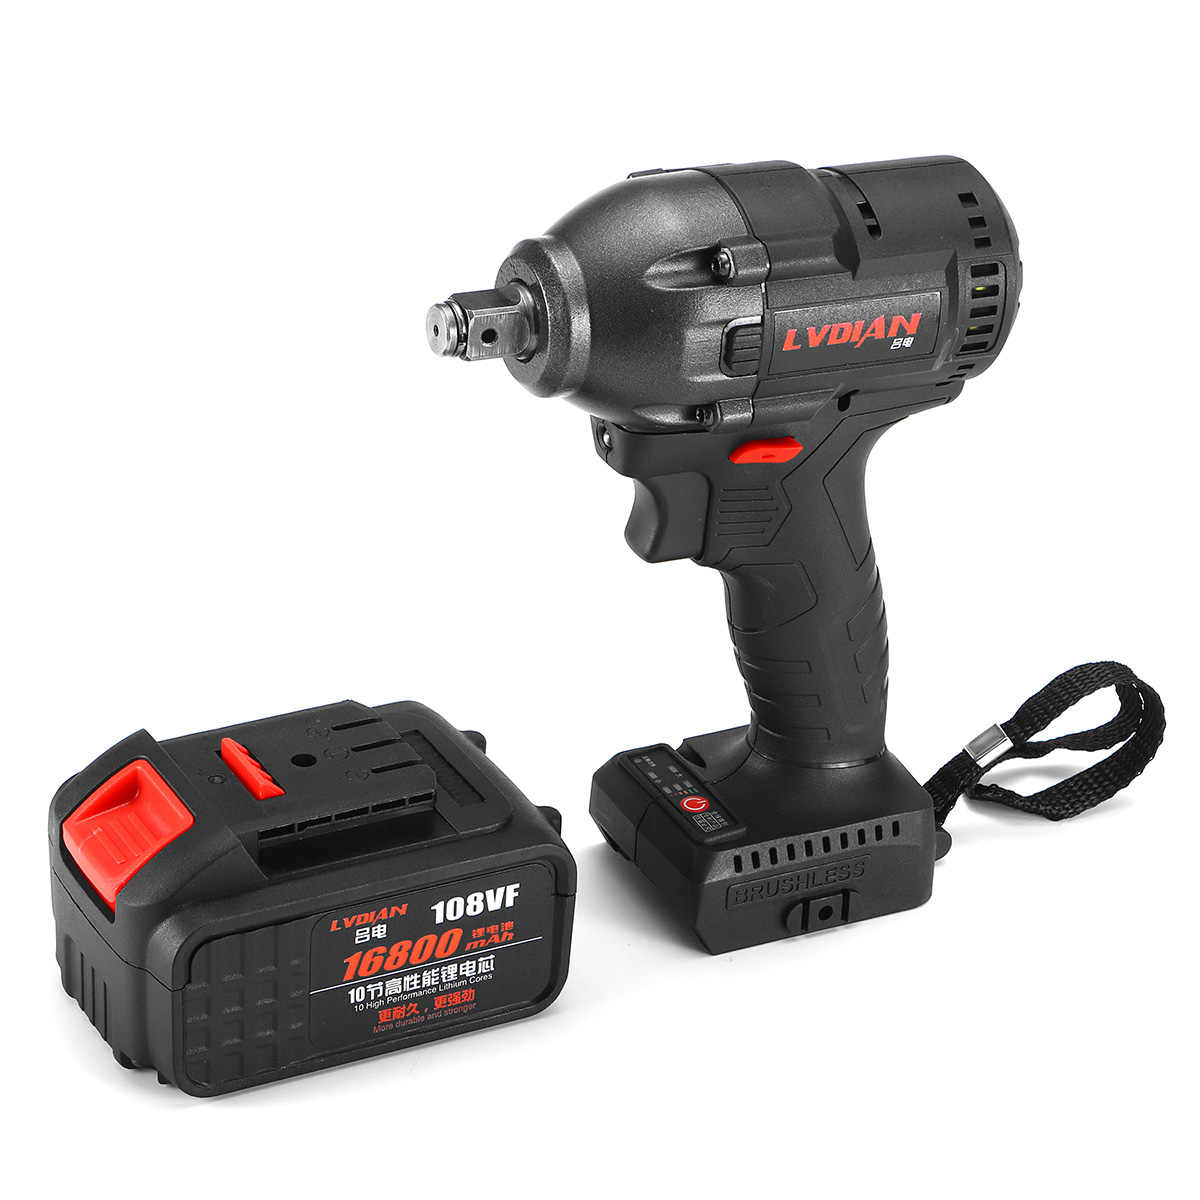 Electric Impact Wrench 330Nm Infinitely Cordless Speed Brushless Motor Electric Wrench Rechargeable Lithium Battery for DIY Home